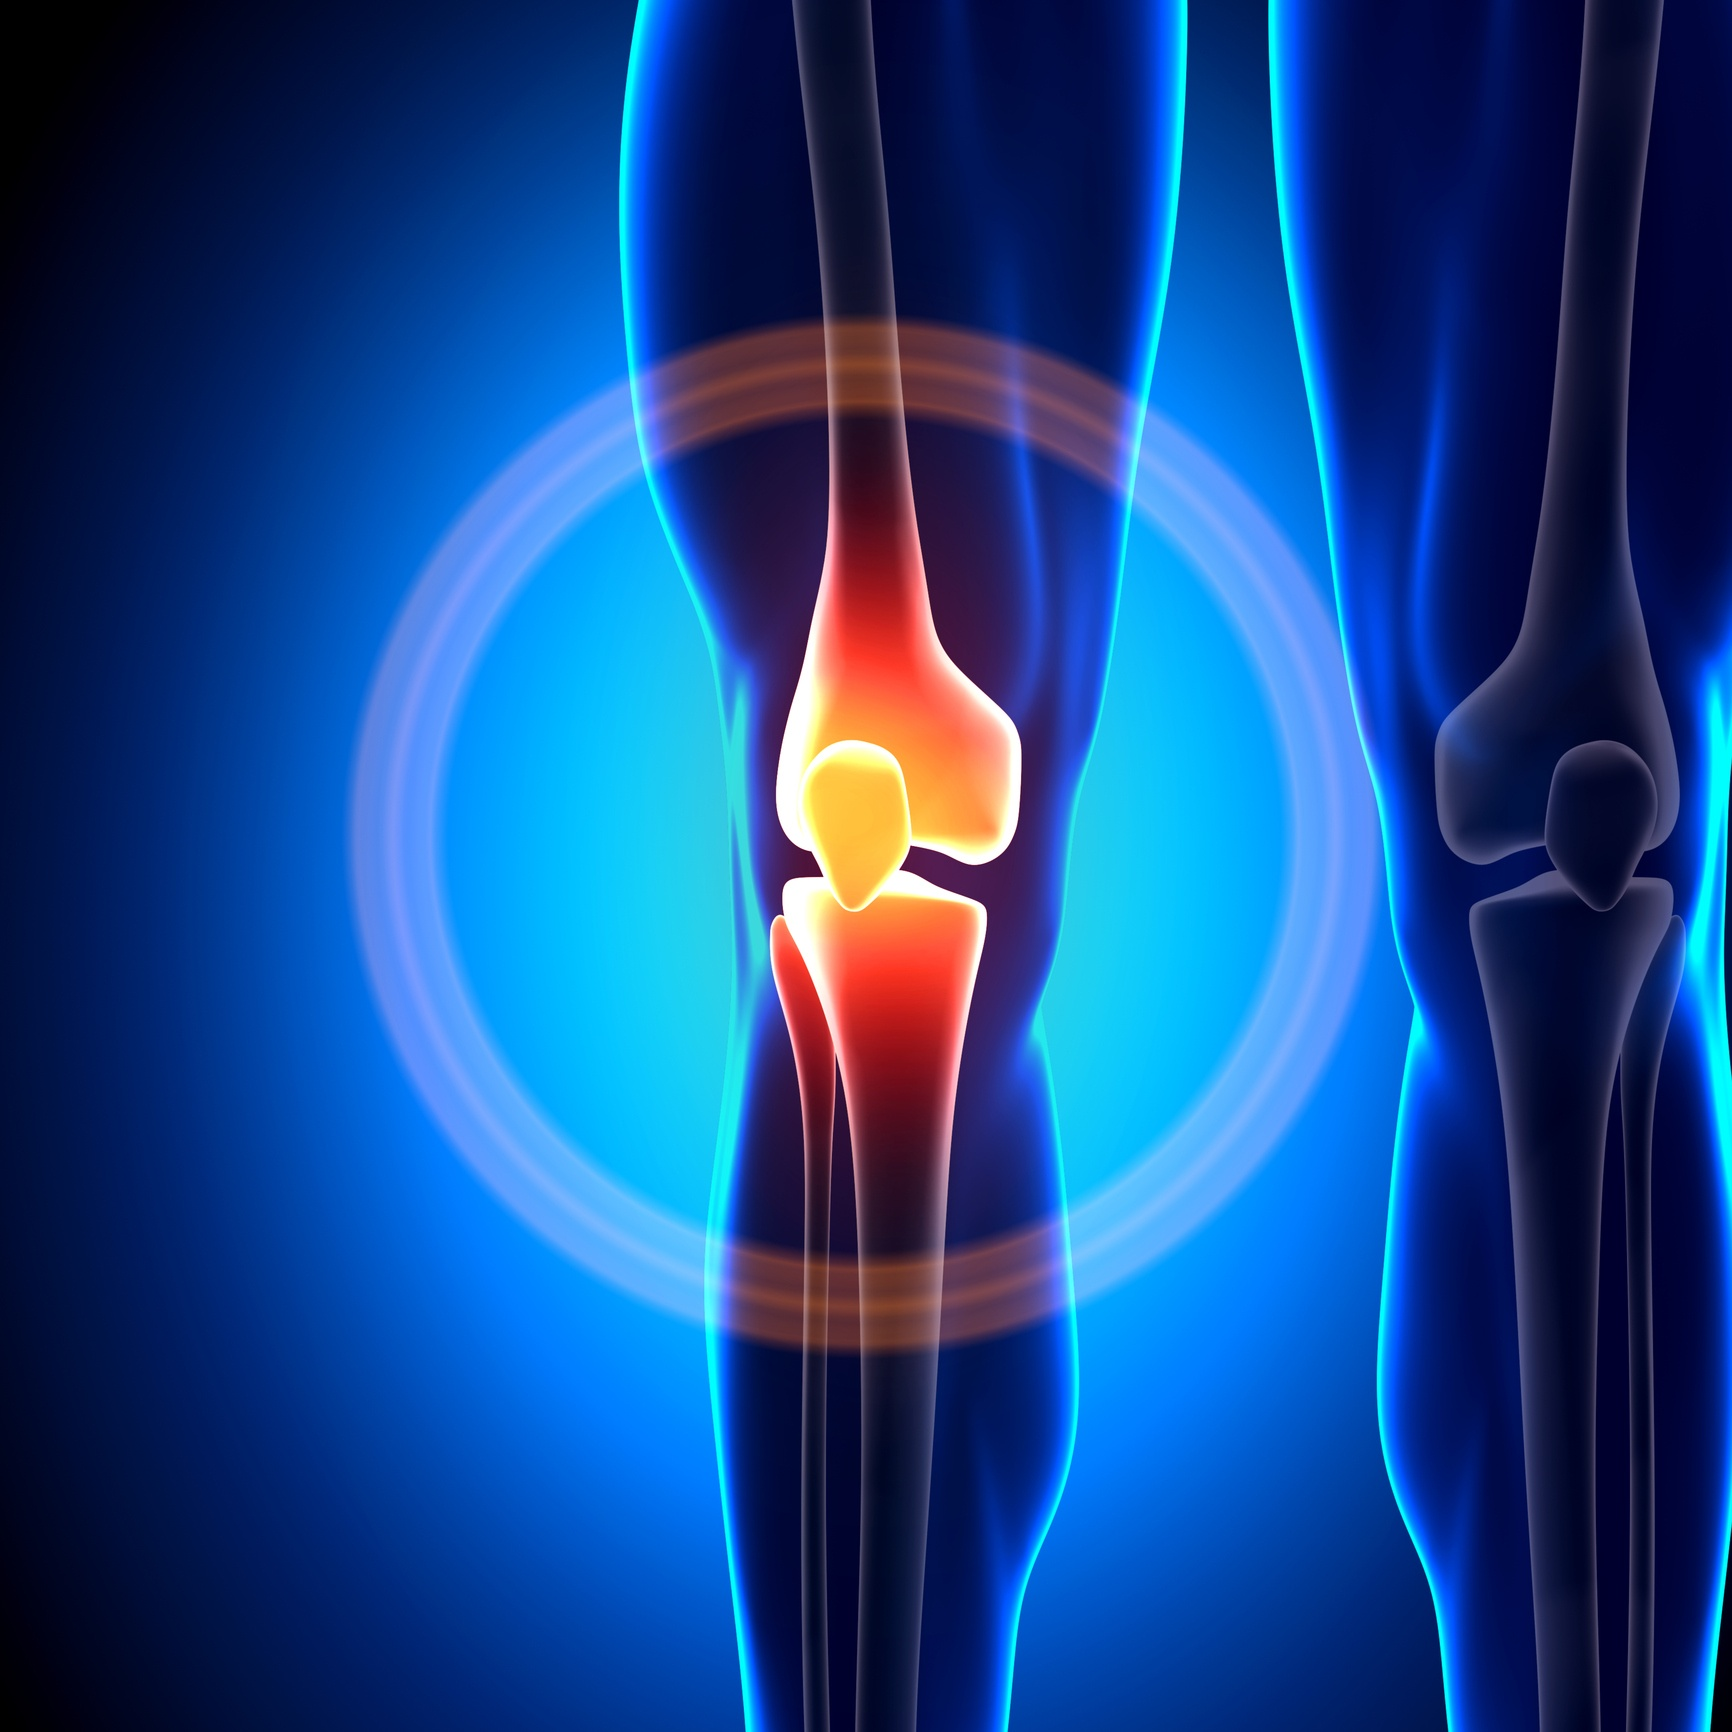 relive-joint-pain-throughout-the-day.